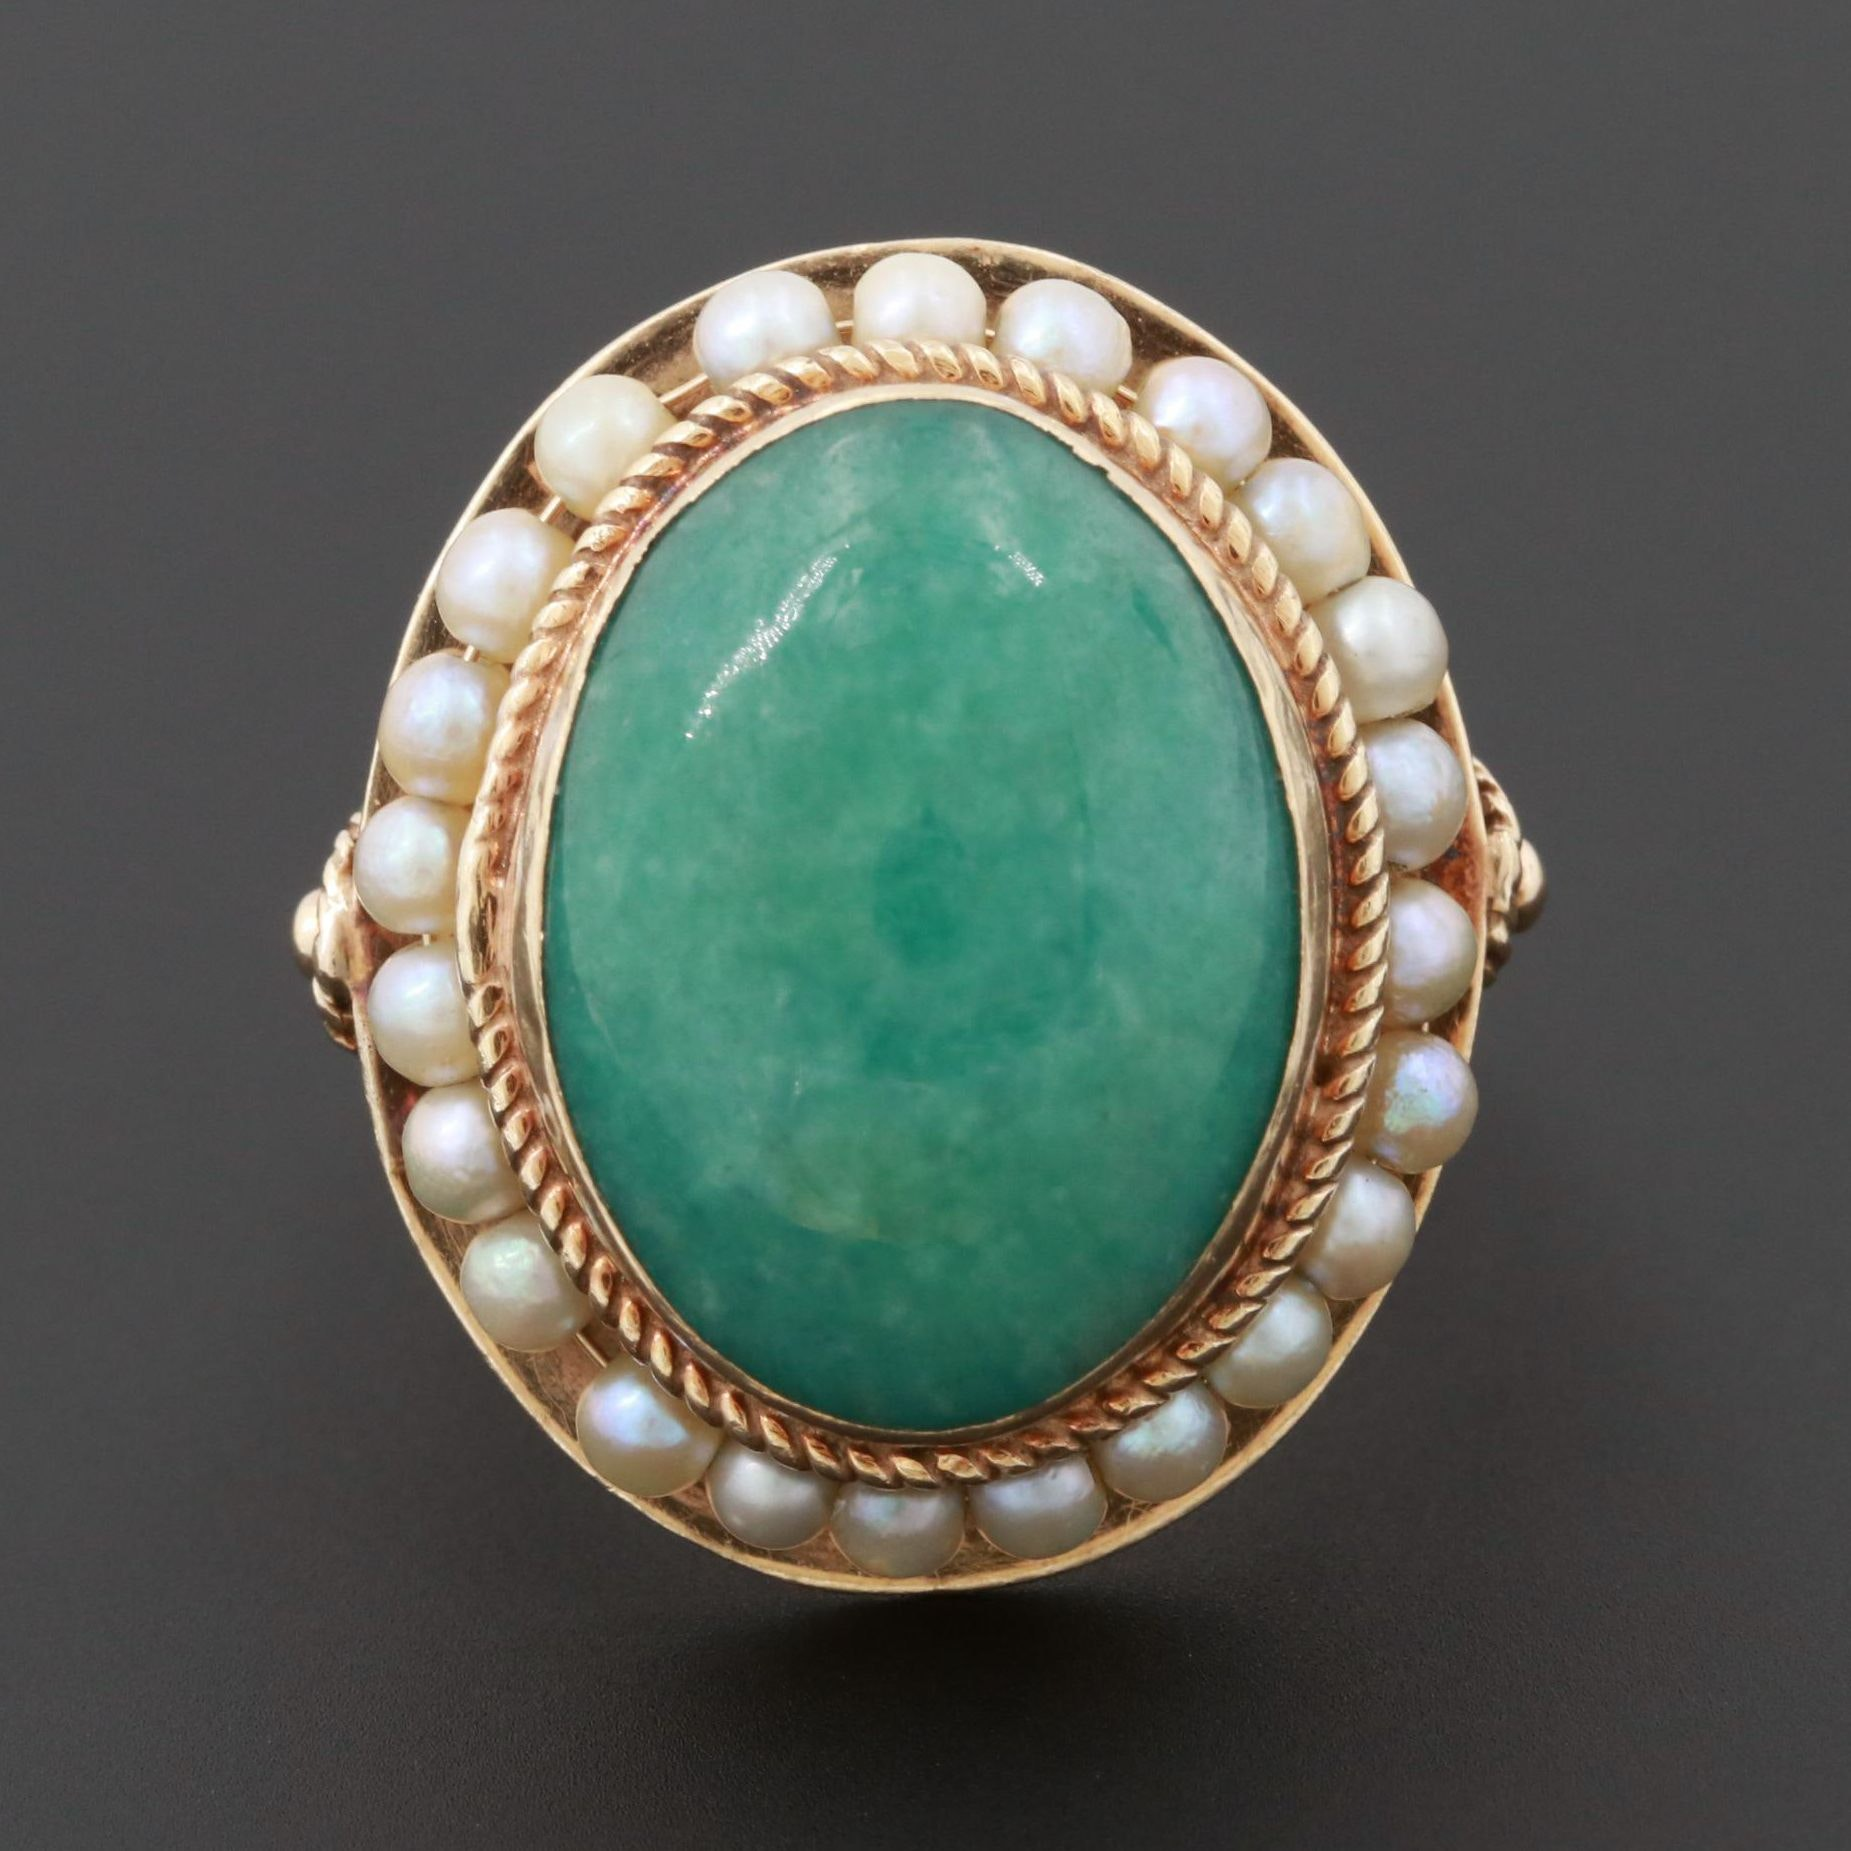 Early 1900s 14K Yellow Gold Jadeite and Cultured Pearl Ring